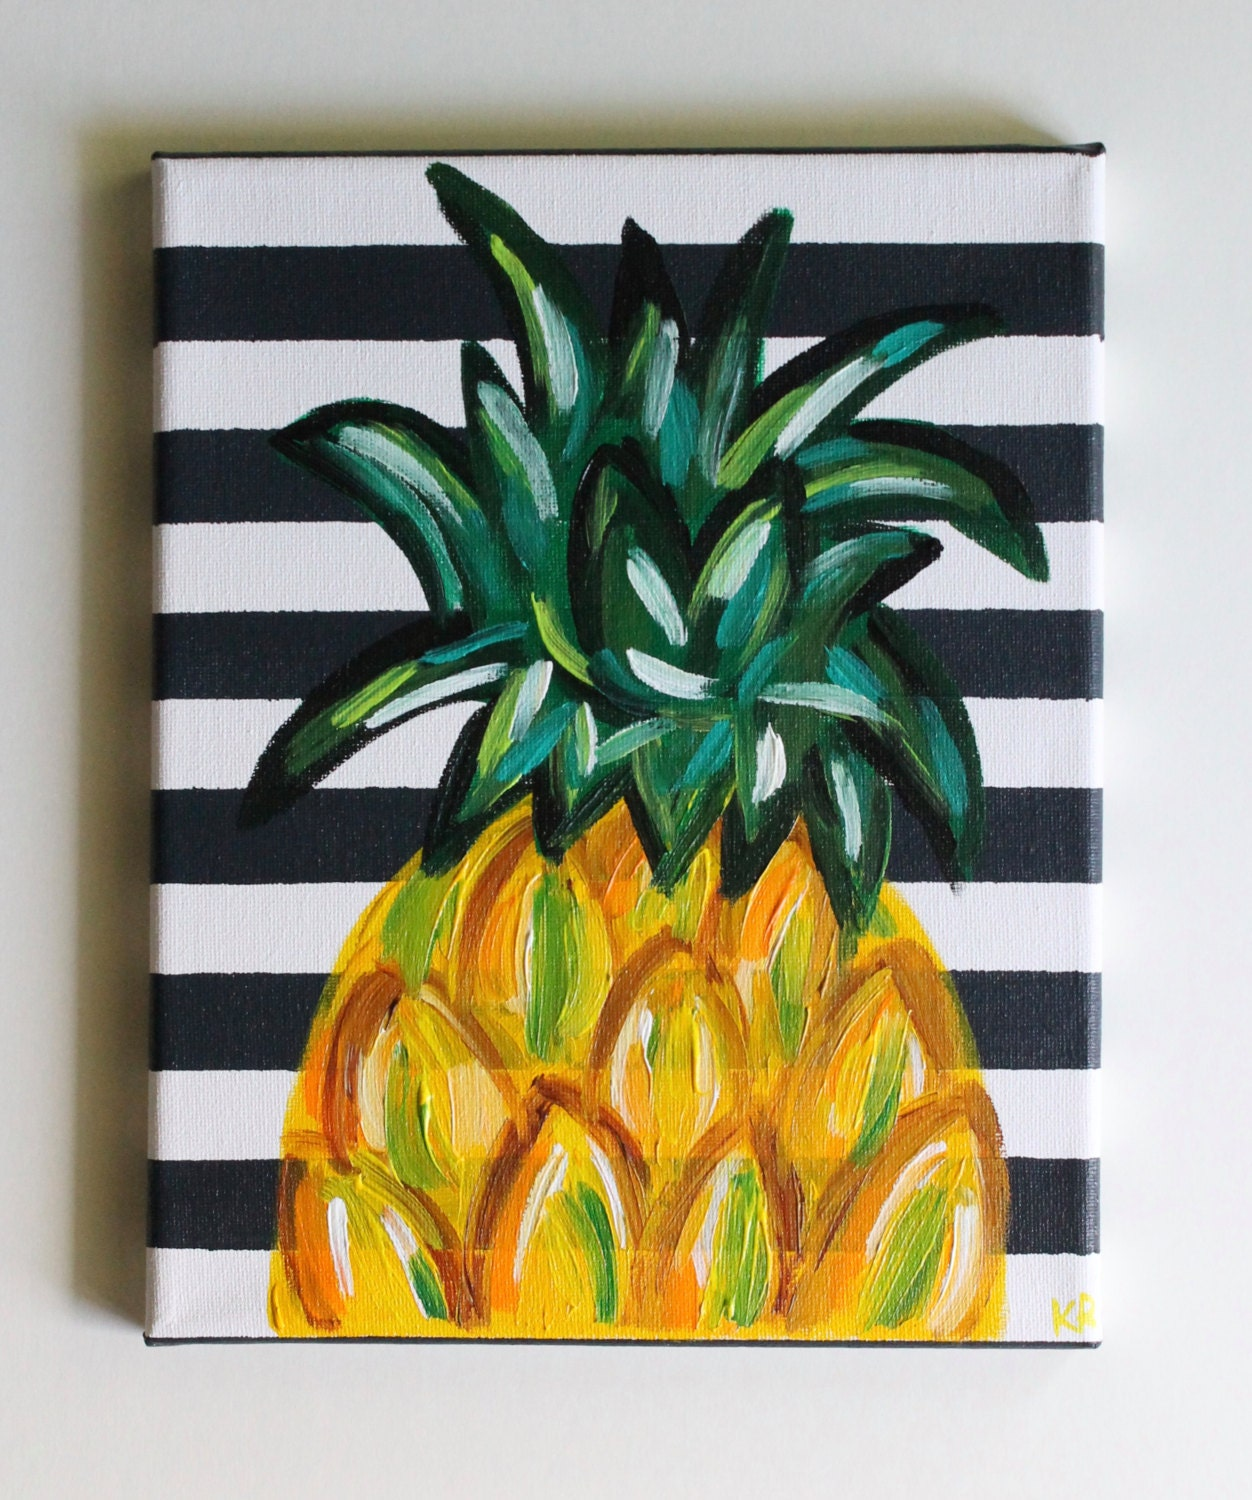 Kitchen Artwork Ideas: Pineapple Art Pineapple Painting Kitchen Art Dining Room